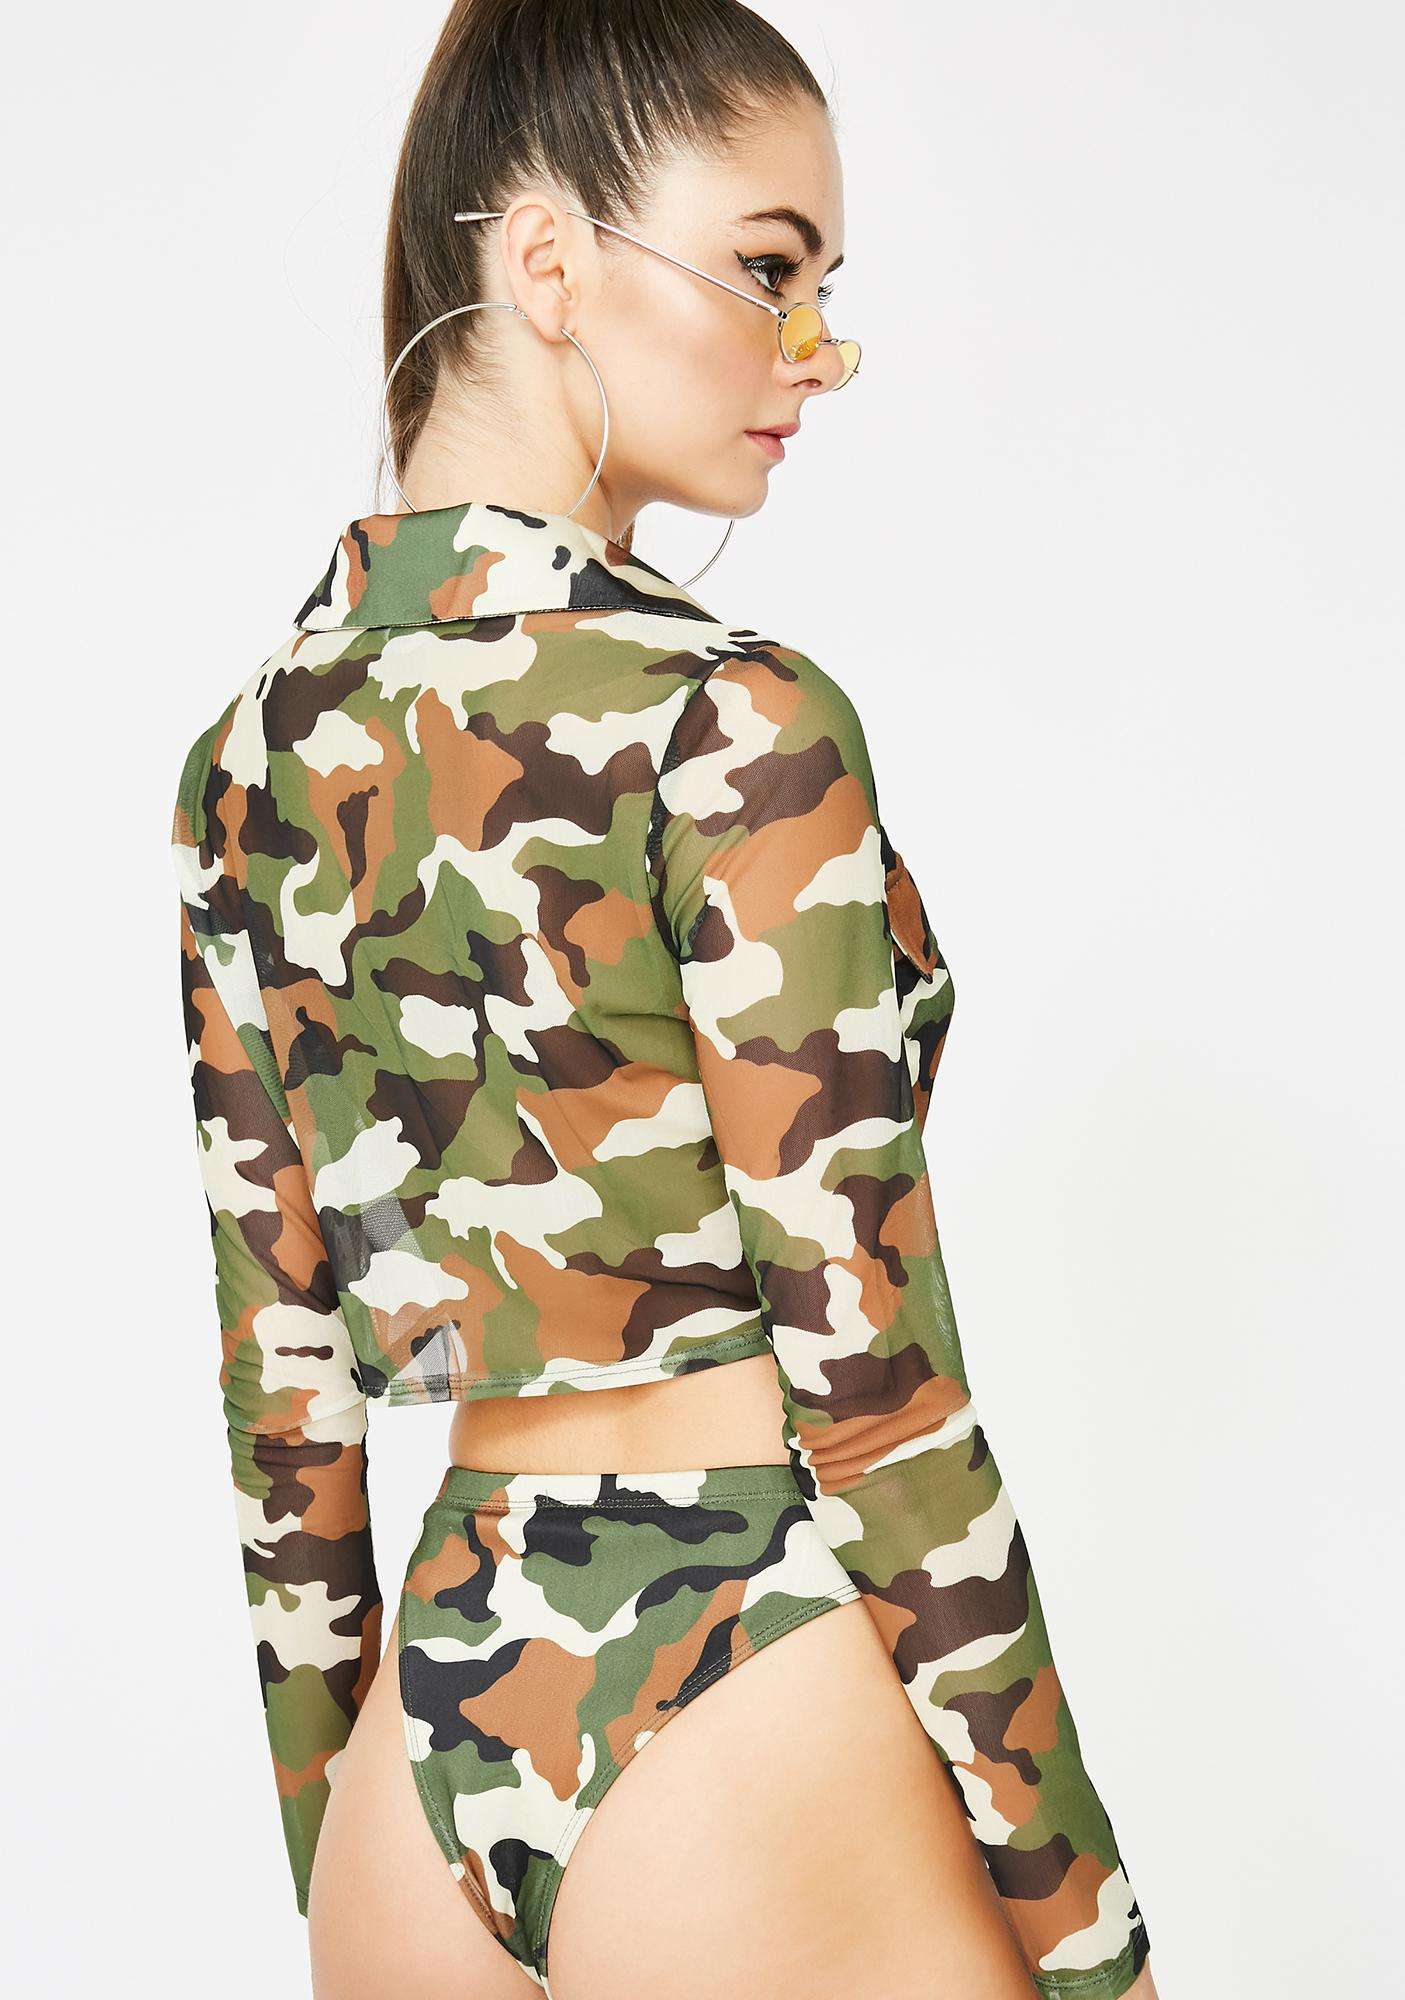 Baddie Revolution Camo Crop Top